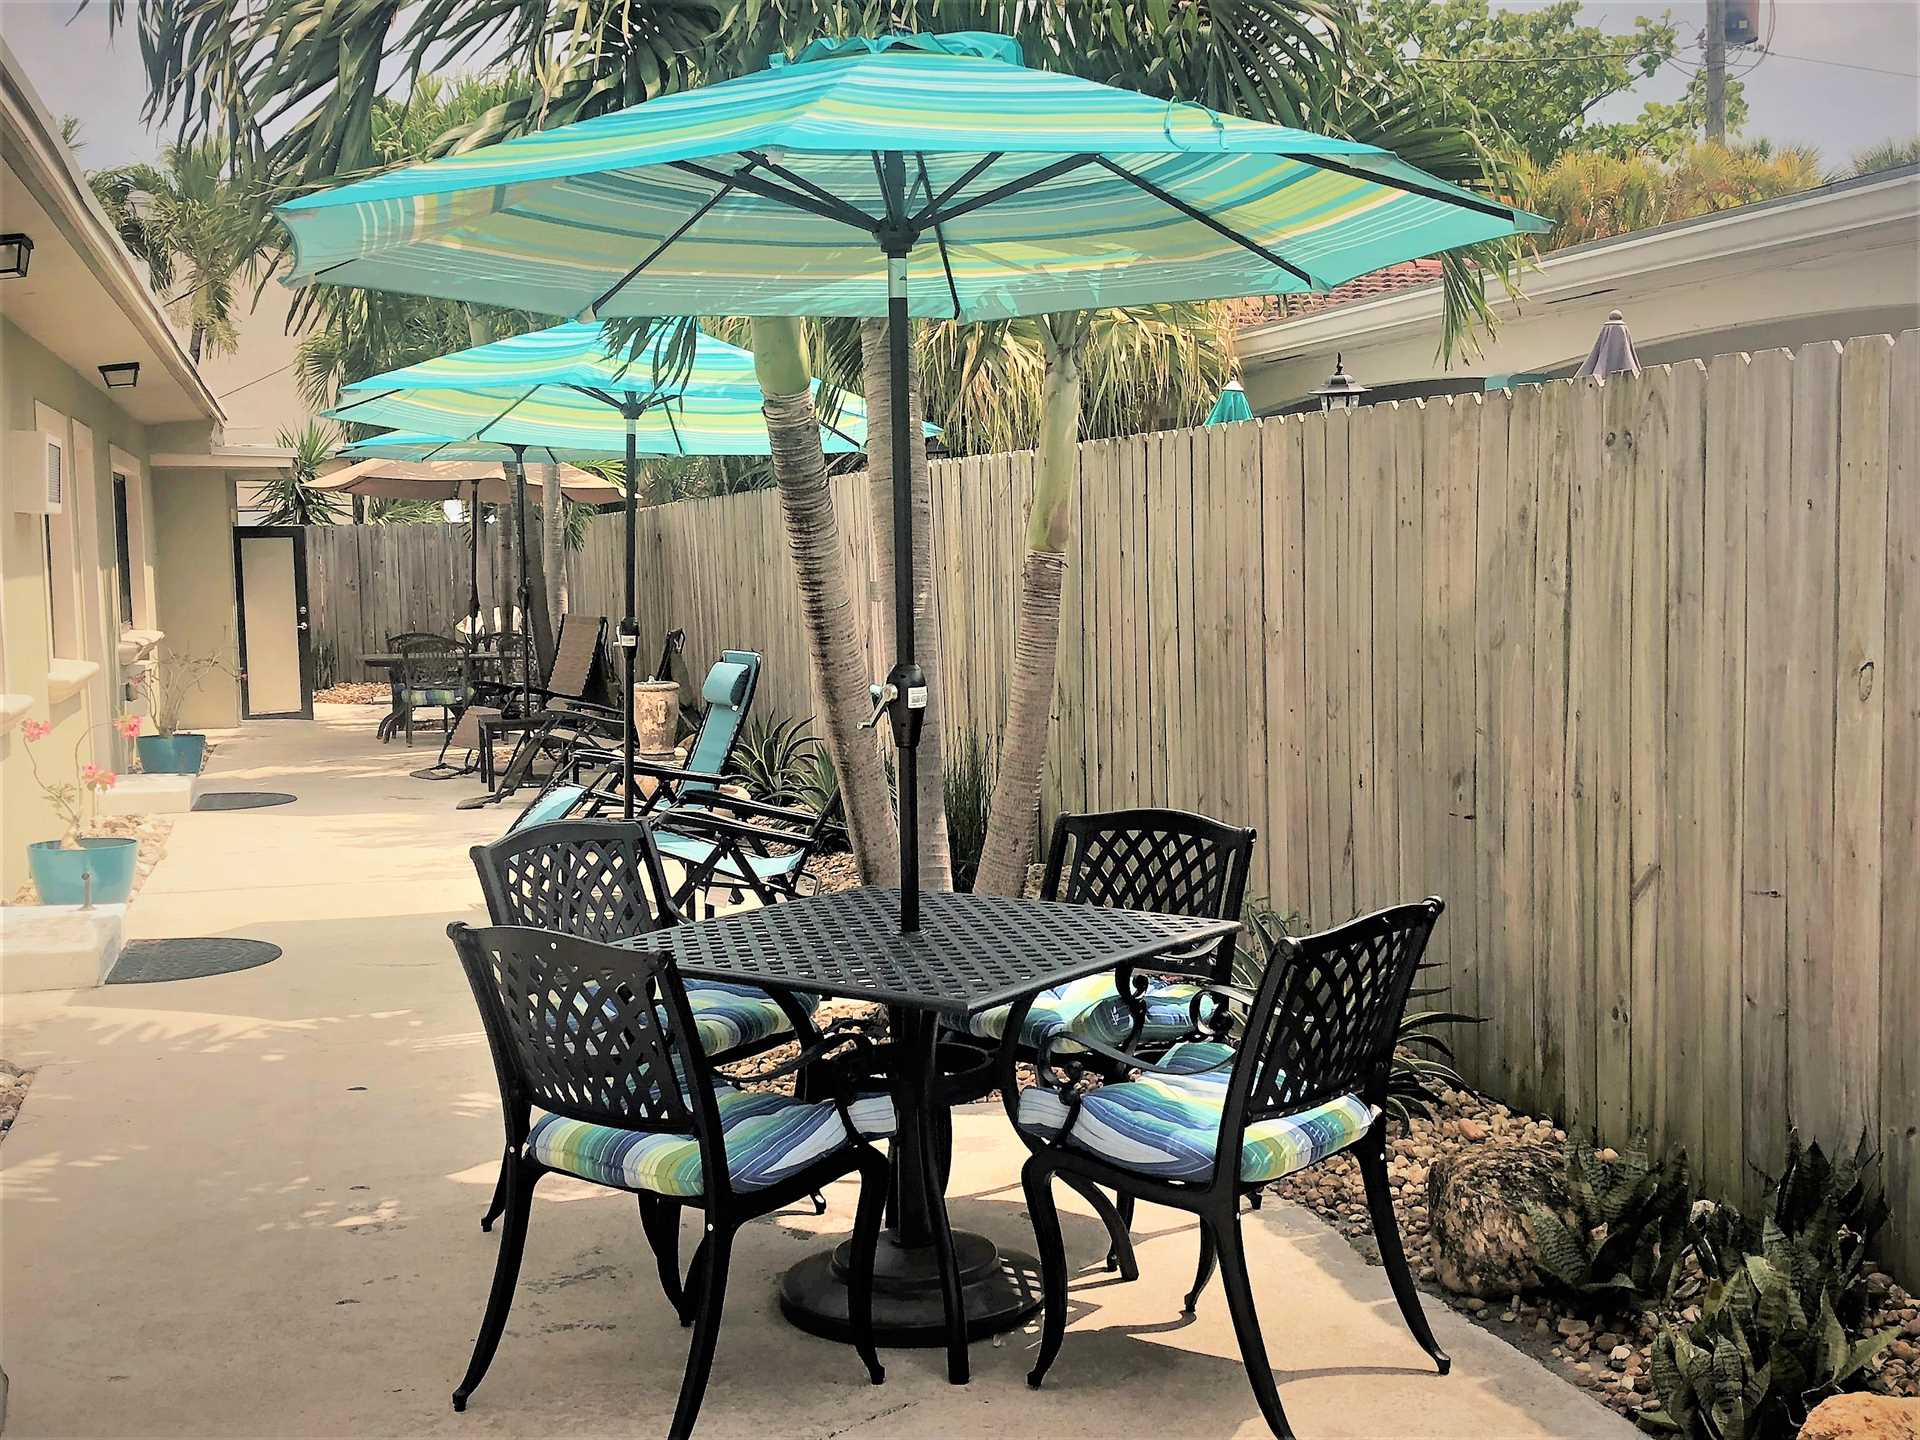 Dine at one of the patio tables and experience the South Flo